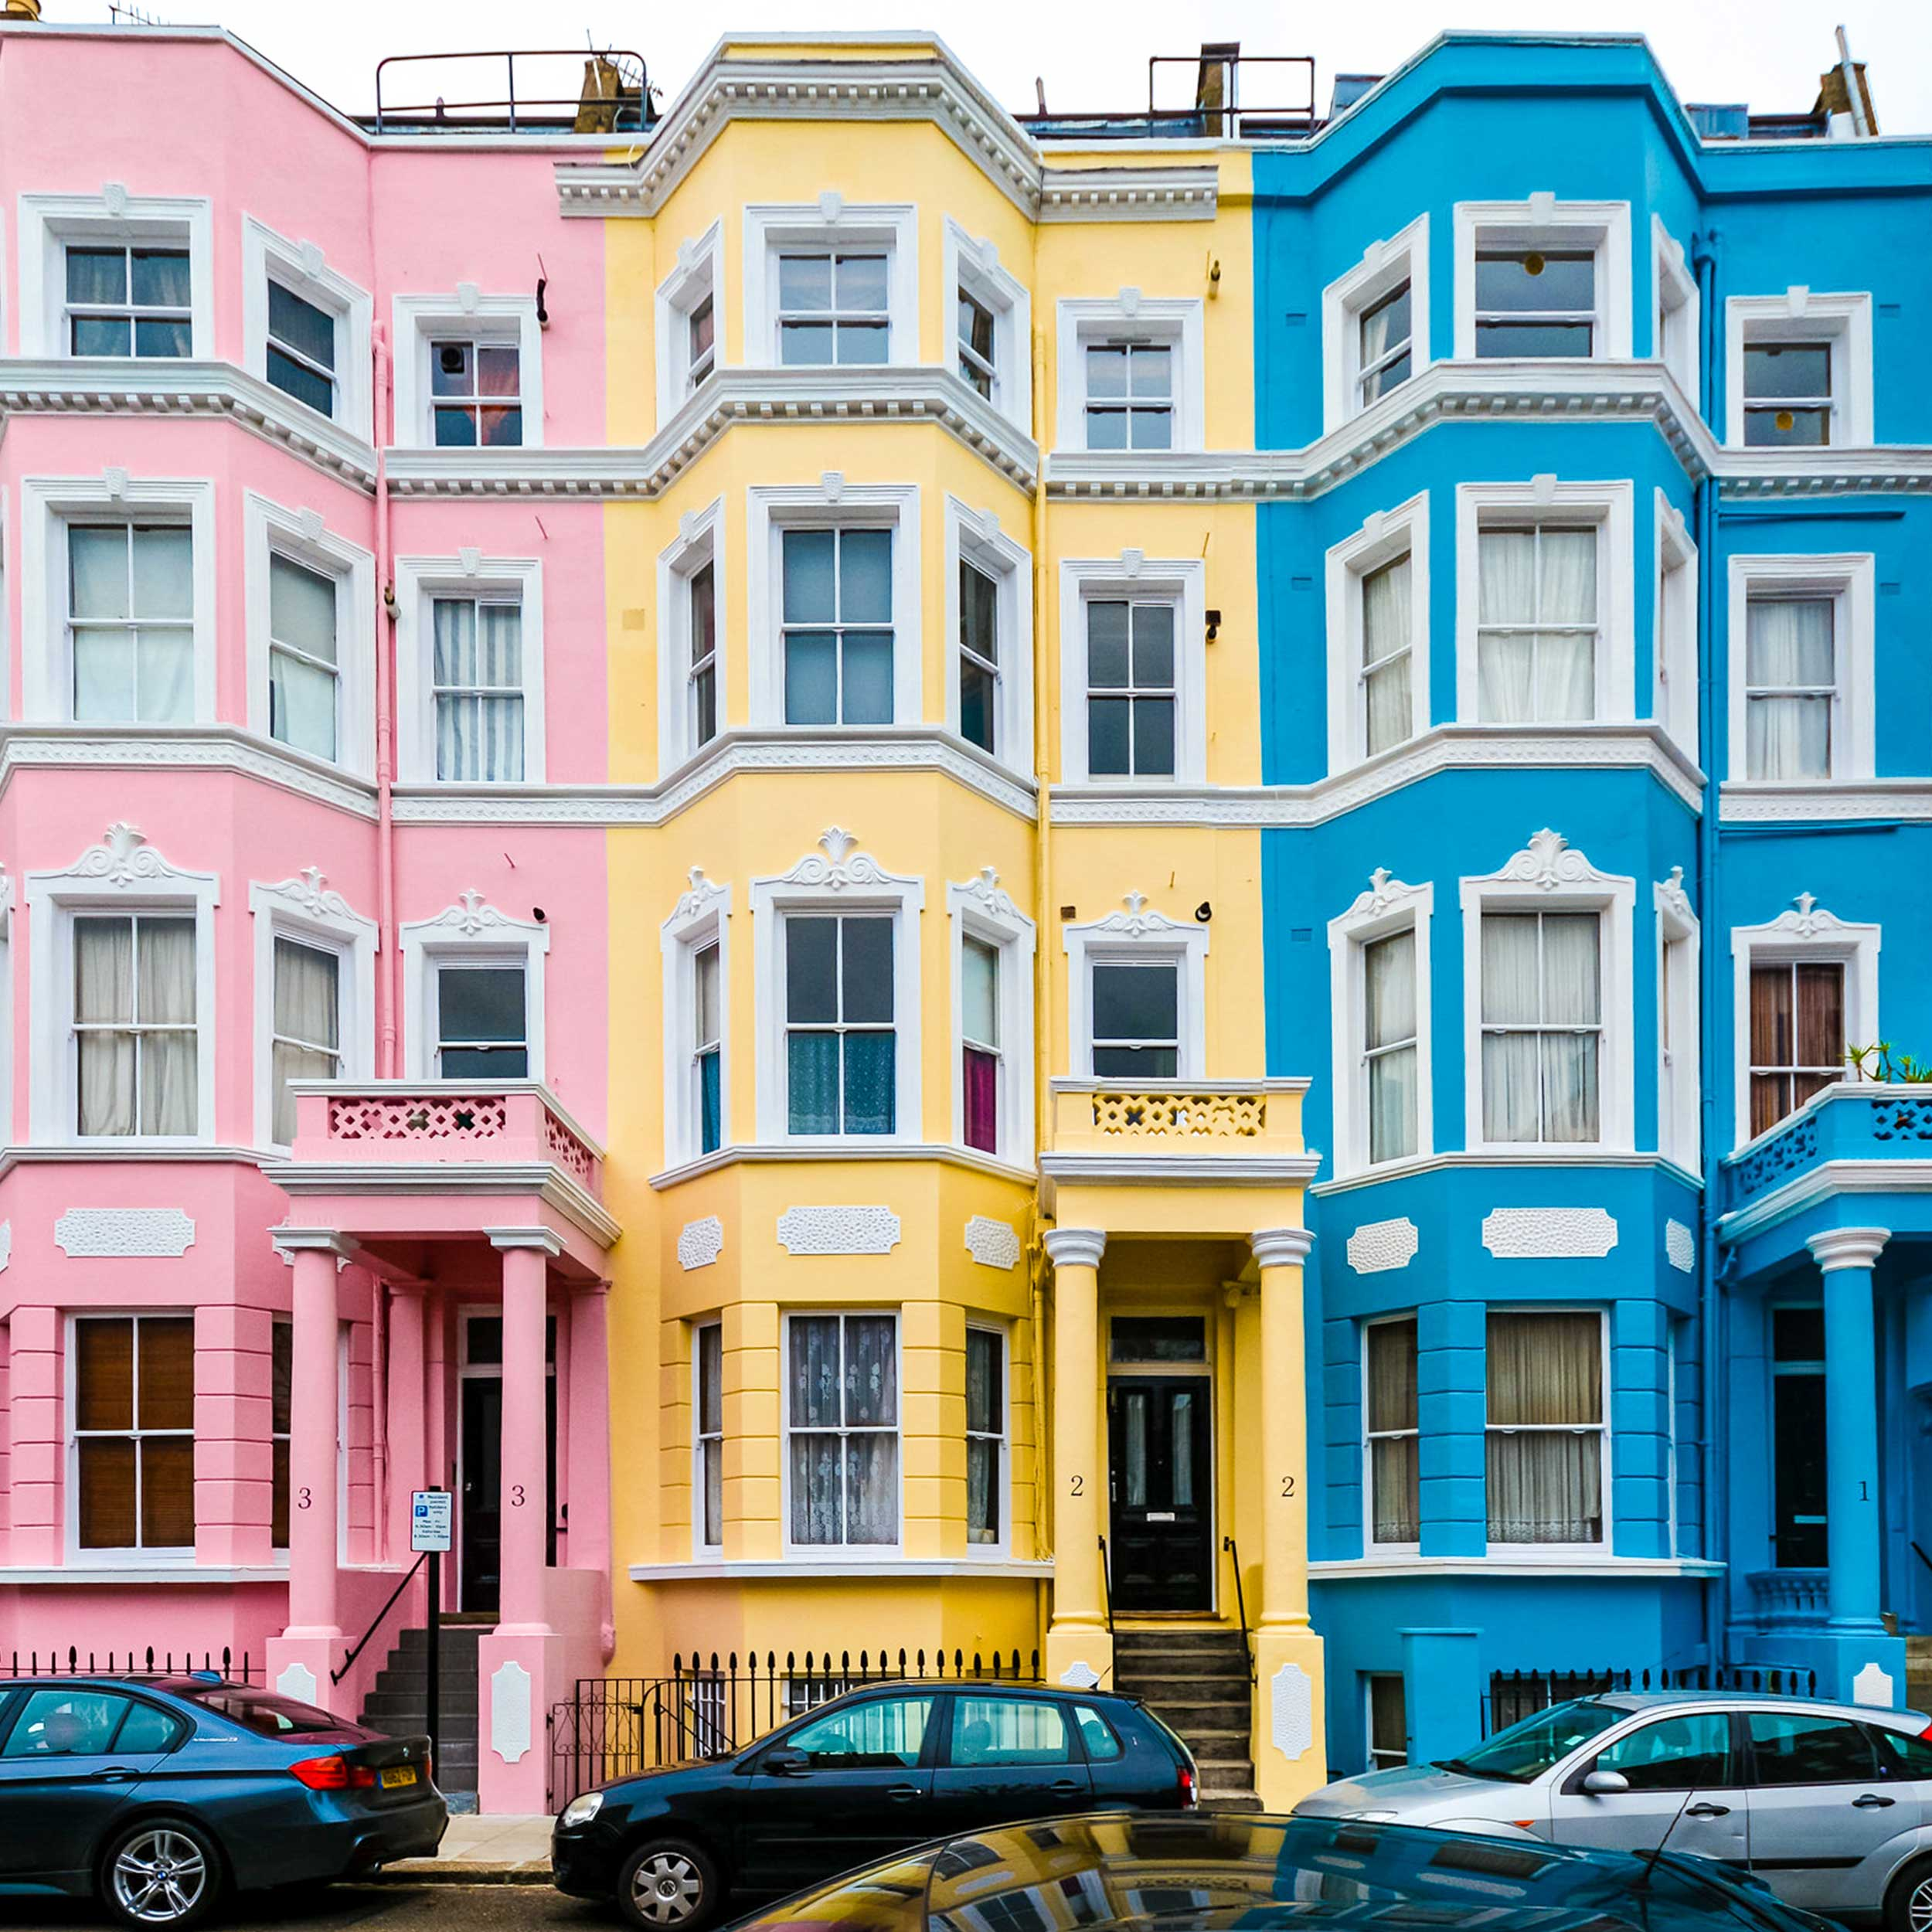 exterior housing painting projects in notting hill after repairs were carried out 3 colours pink, yellow and blue